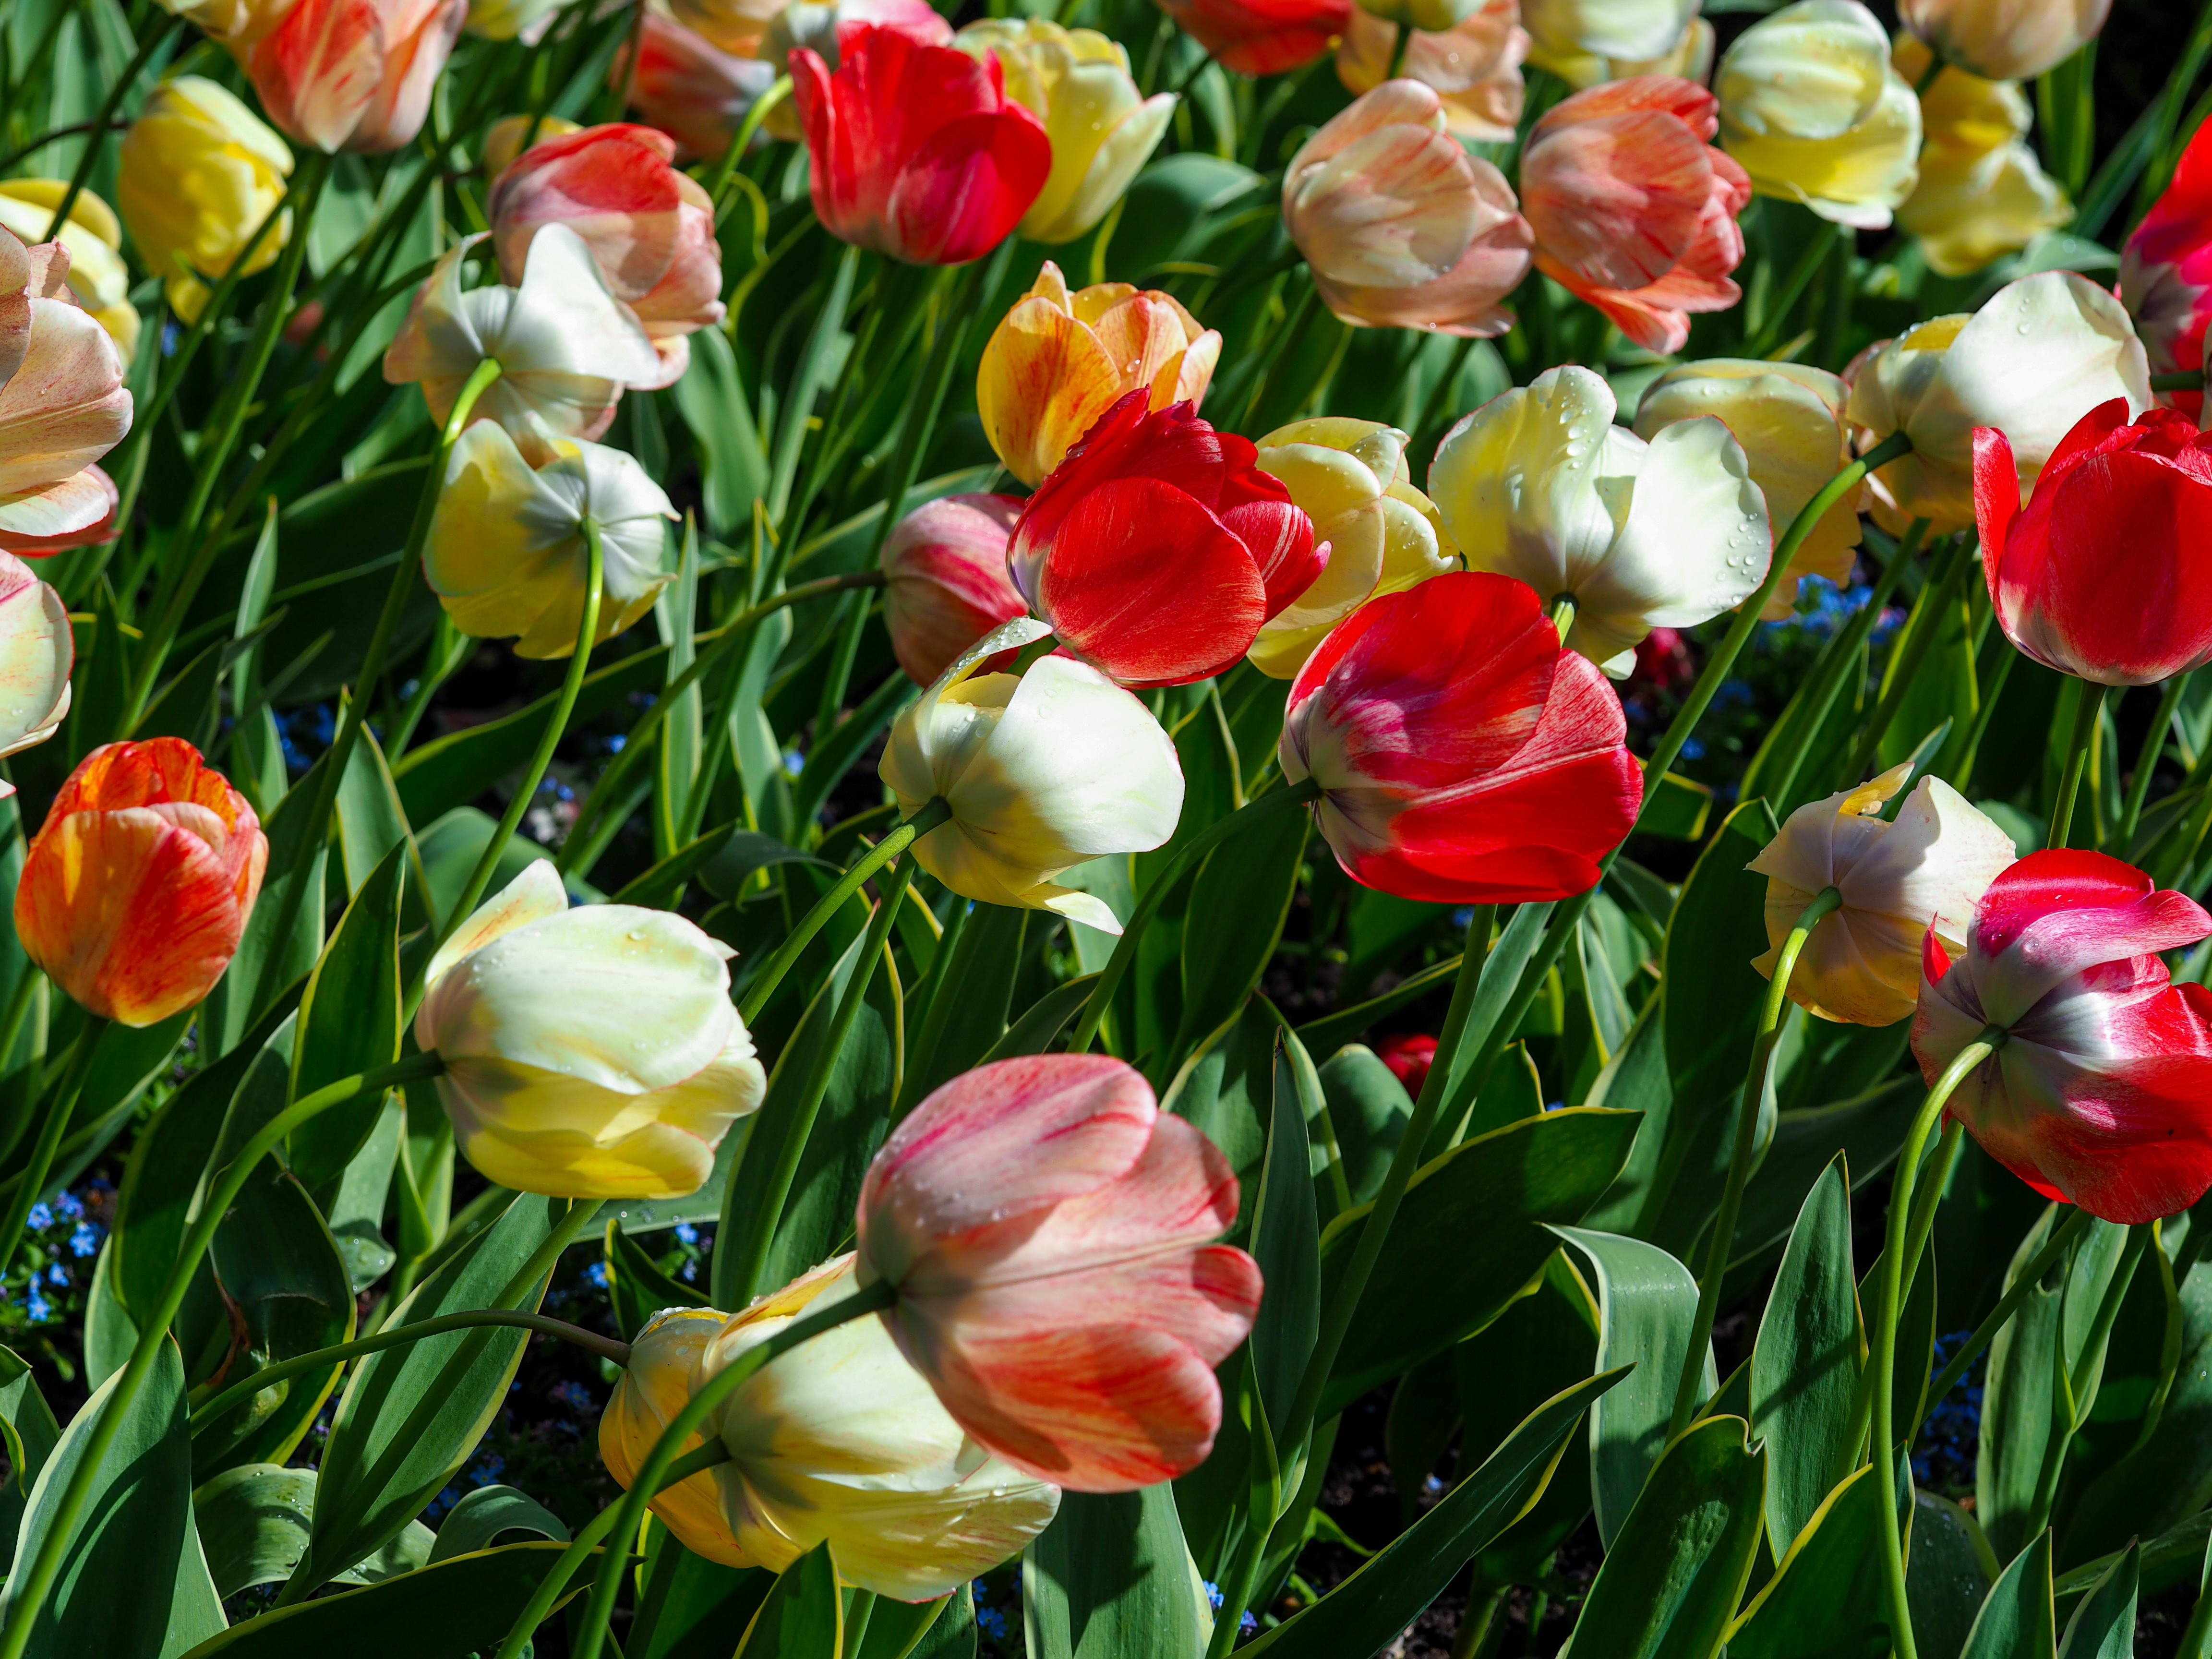 Tulips in the breeze